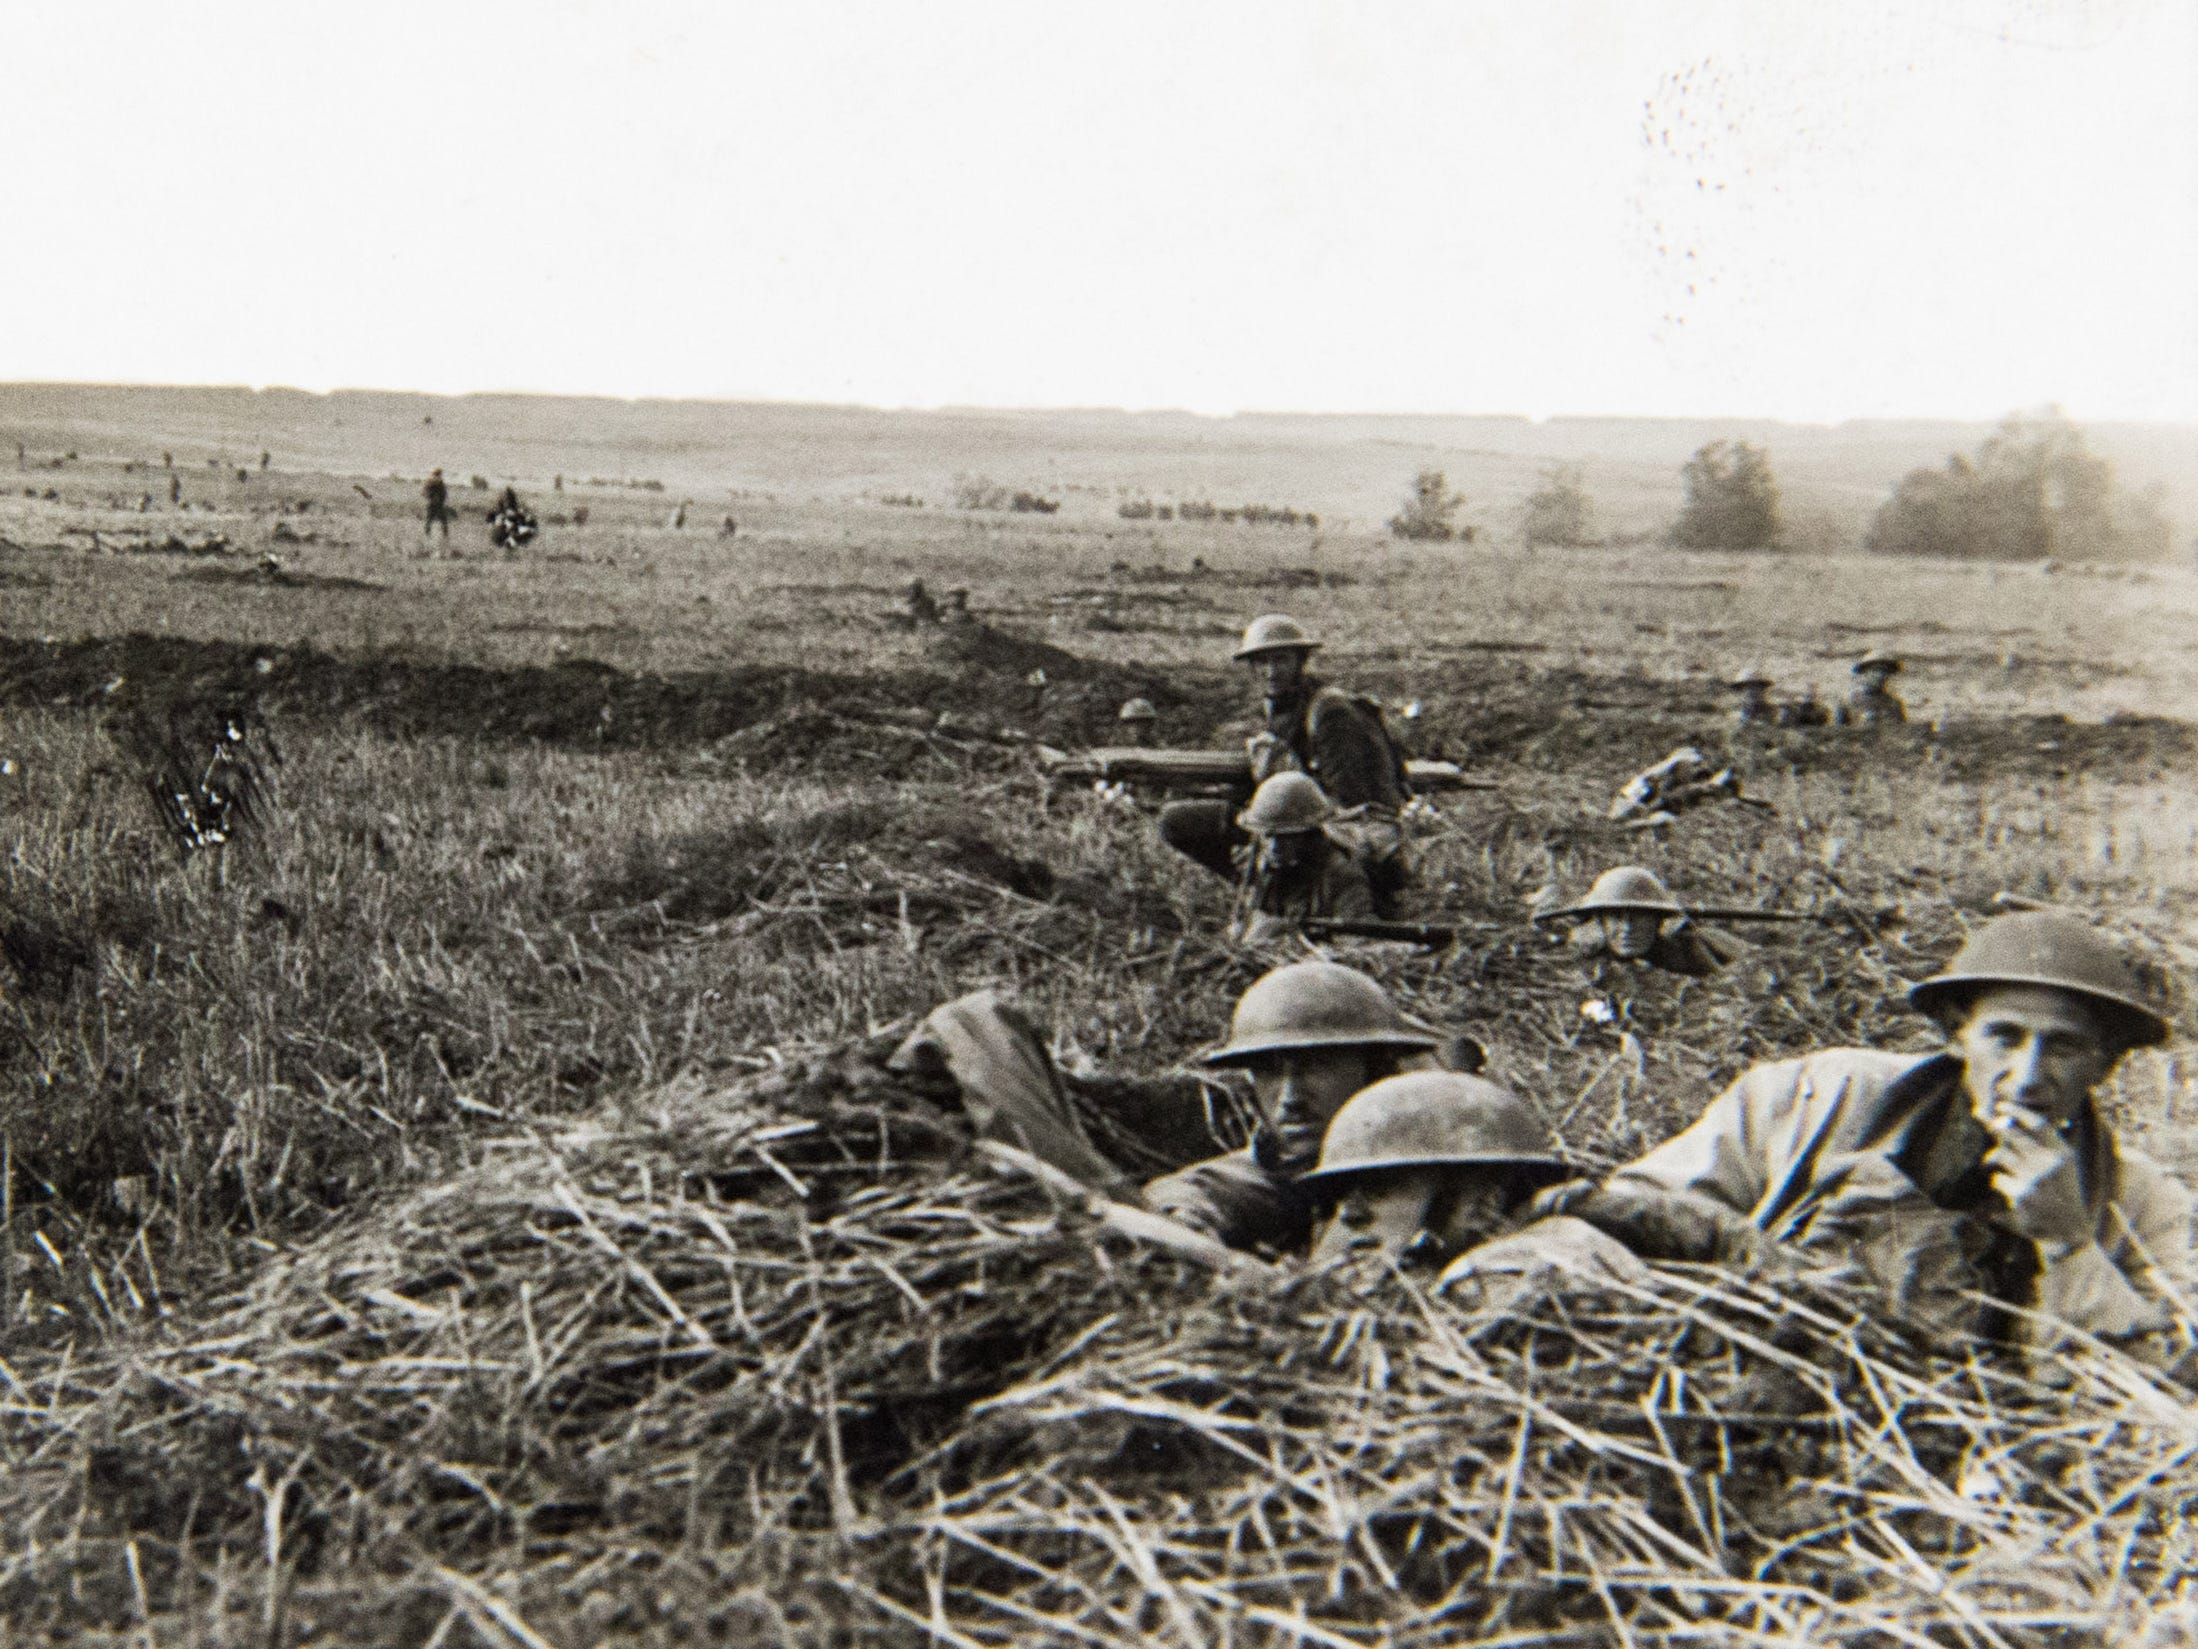 Soldiers from the 32nd Division, composed of men from the Wisconsin and Michigan National Guard units, make final preparations on Aug. 8, 1918, for the attack that became known as the Second Battle of the Marne. Wisconsin National Guard historian Maj. Brian Faltinson this summer visited the site of this battle where a temporary cemetery was installed for casualties of the battle.